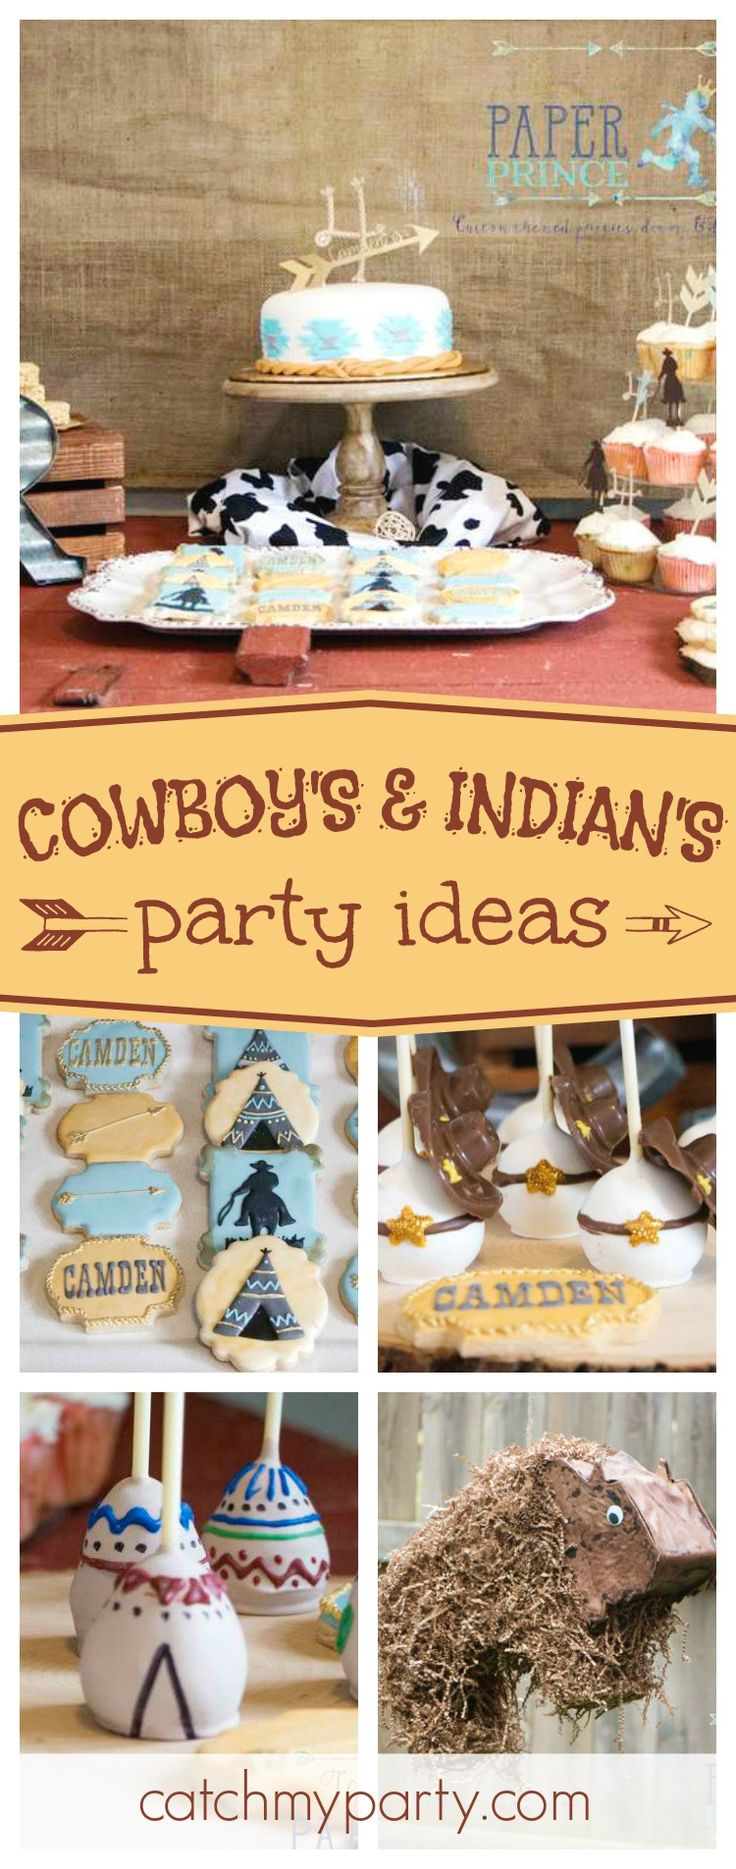 Cowboy party food ideas - Check Out This Awesome Cowboys And Indians Birthday Party The Teepee Cake Pops Are Adorable